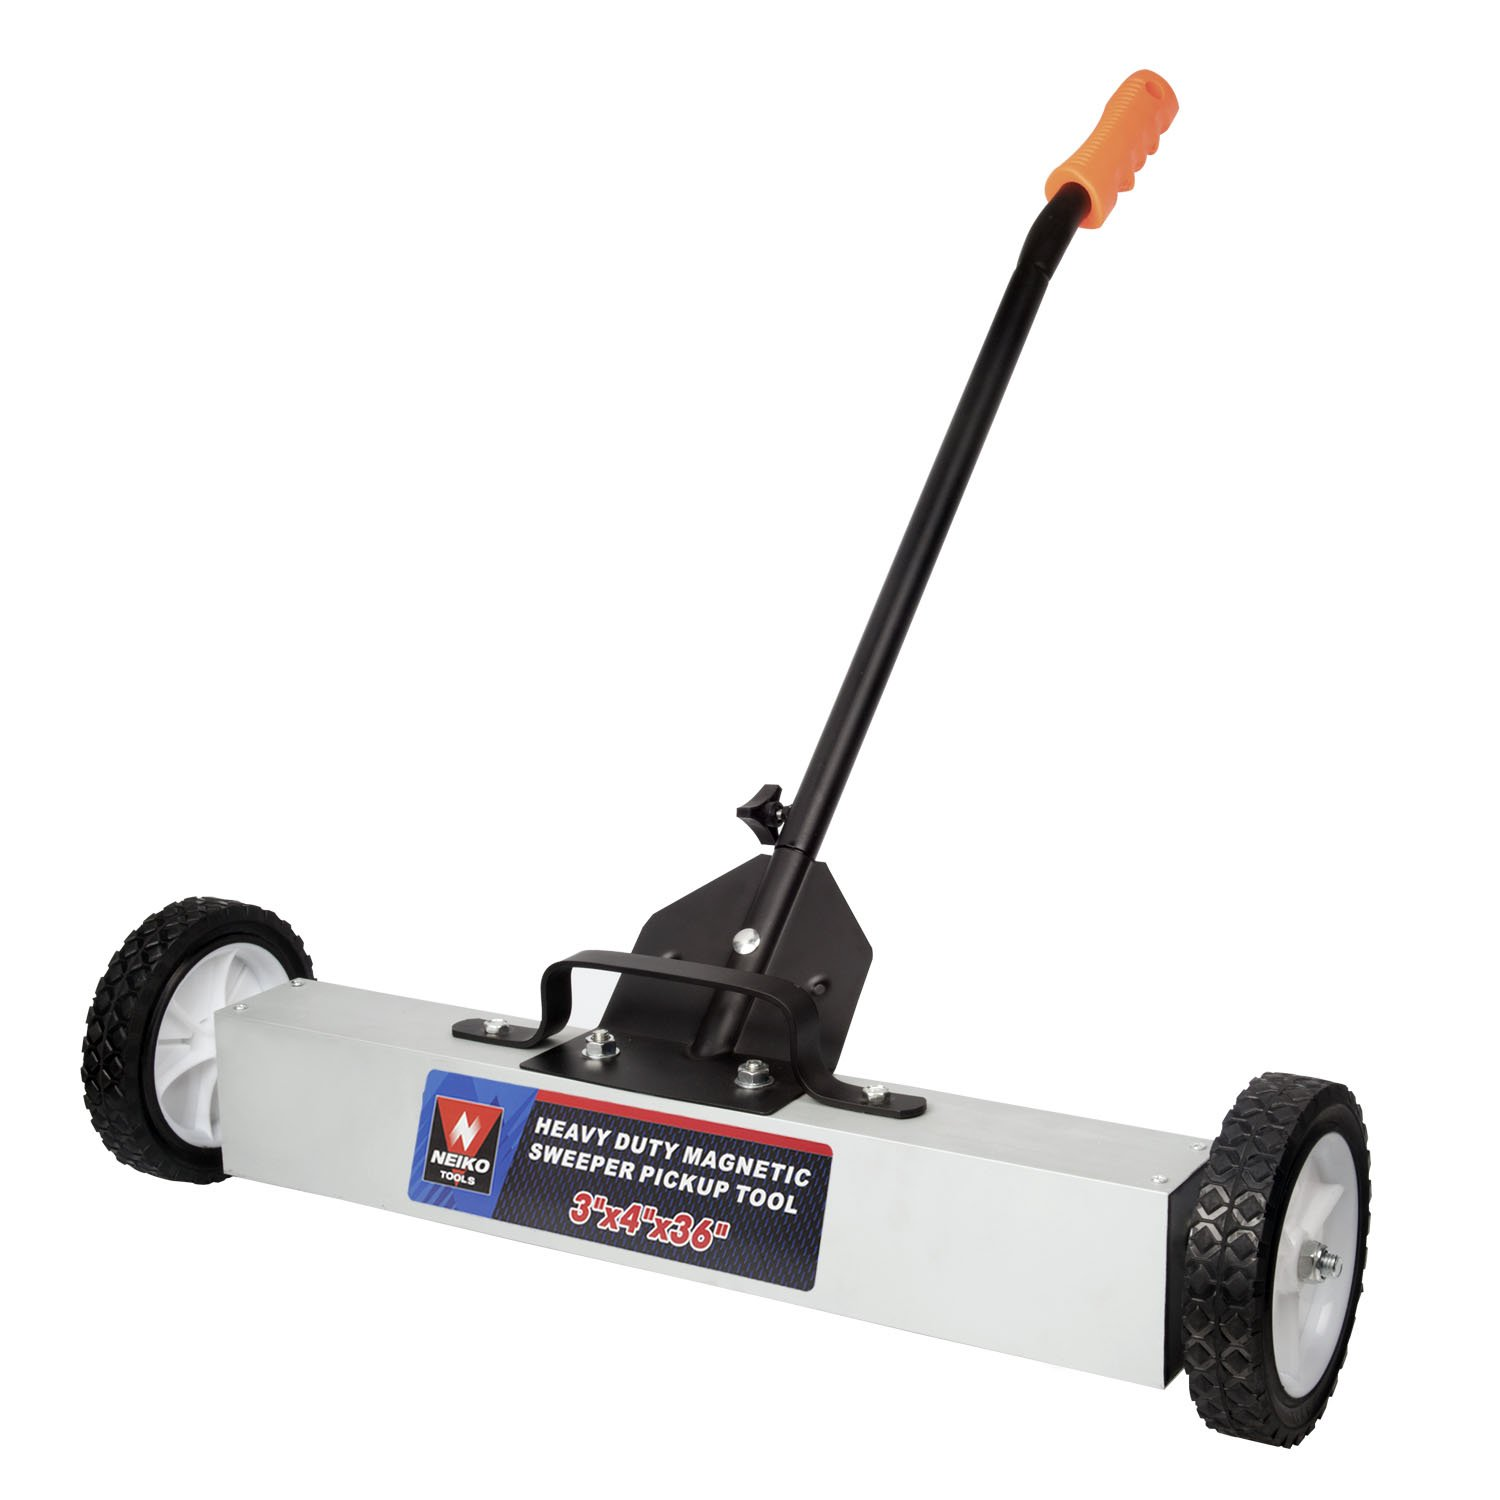 Amazon.com: Magnetic Sweepers: Tools & Home Improvement